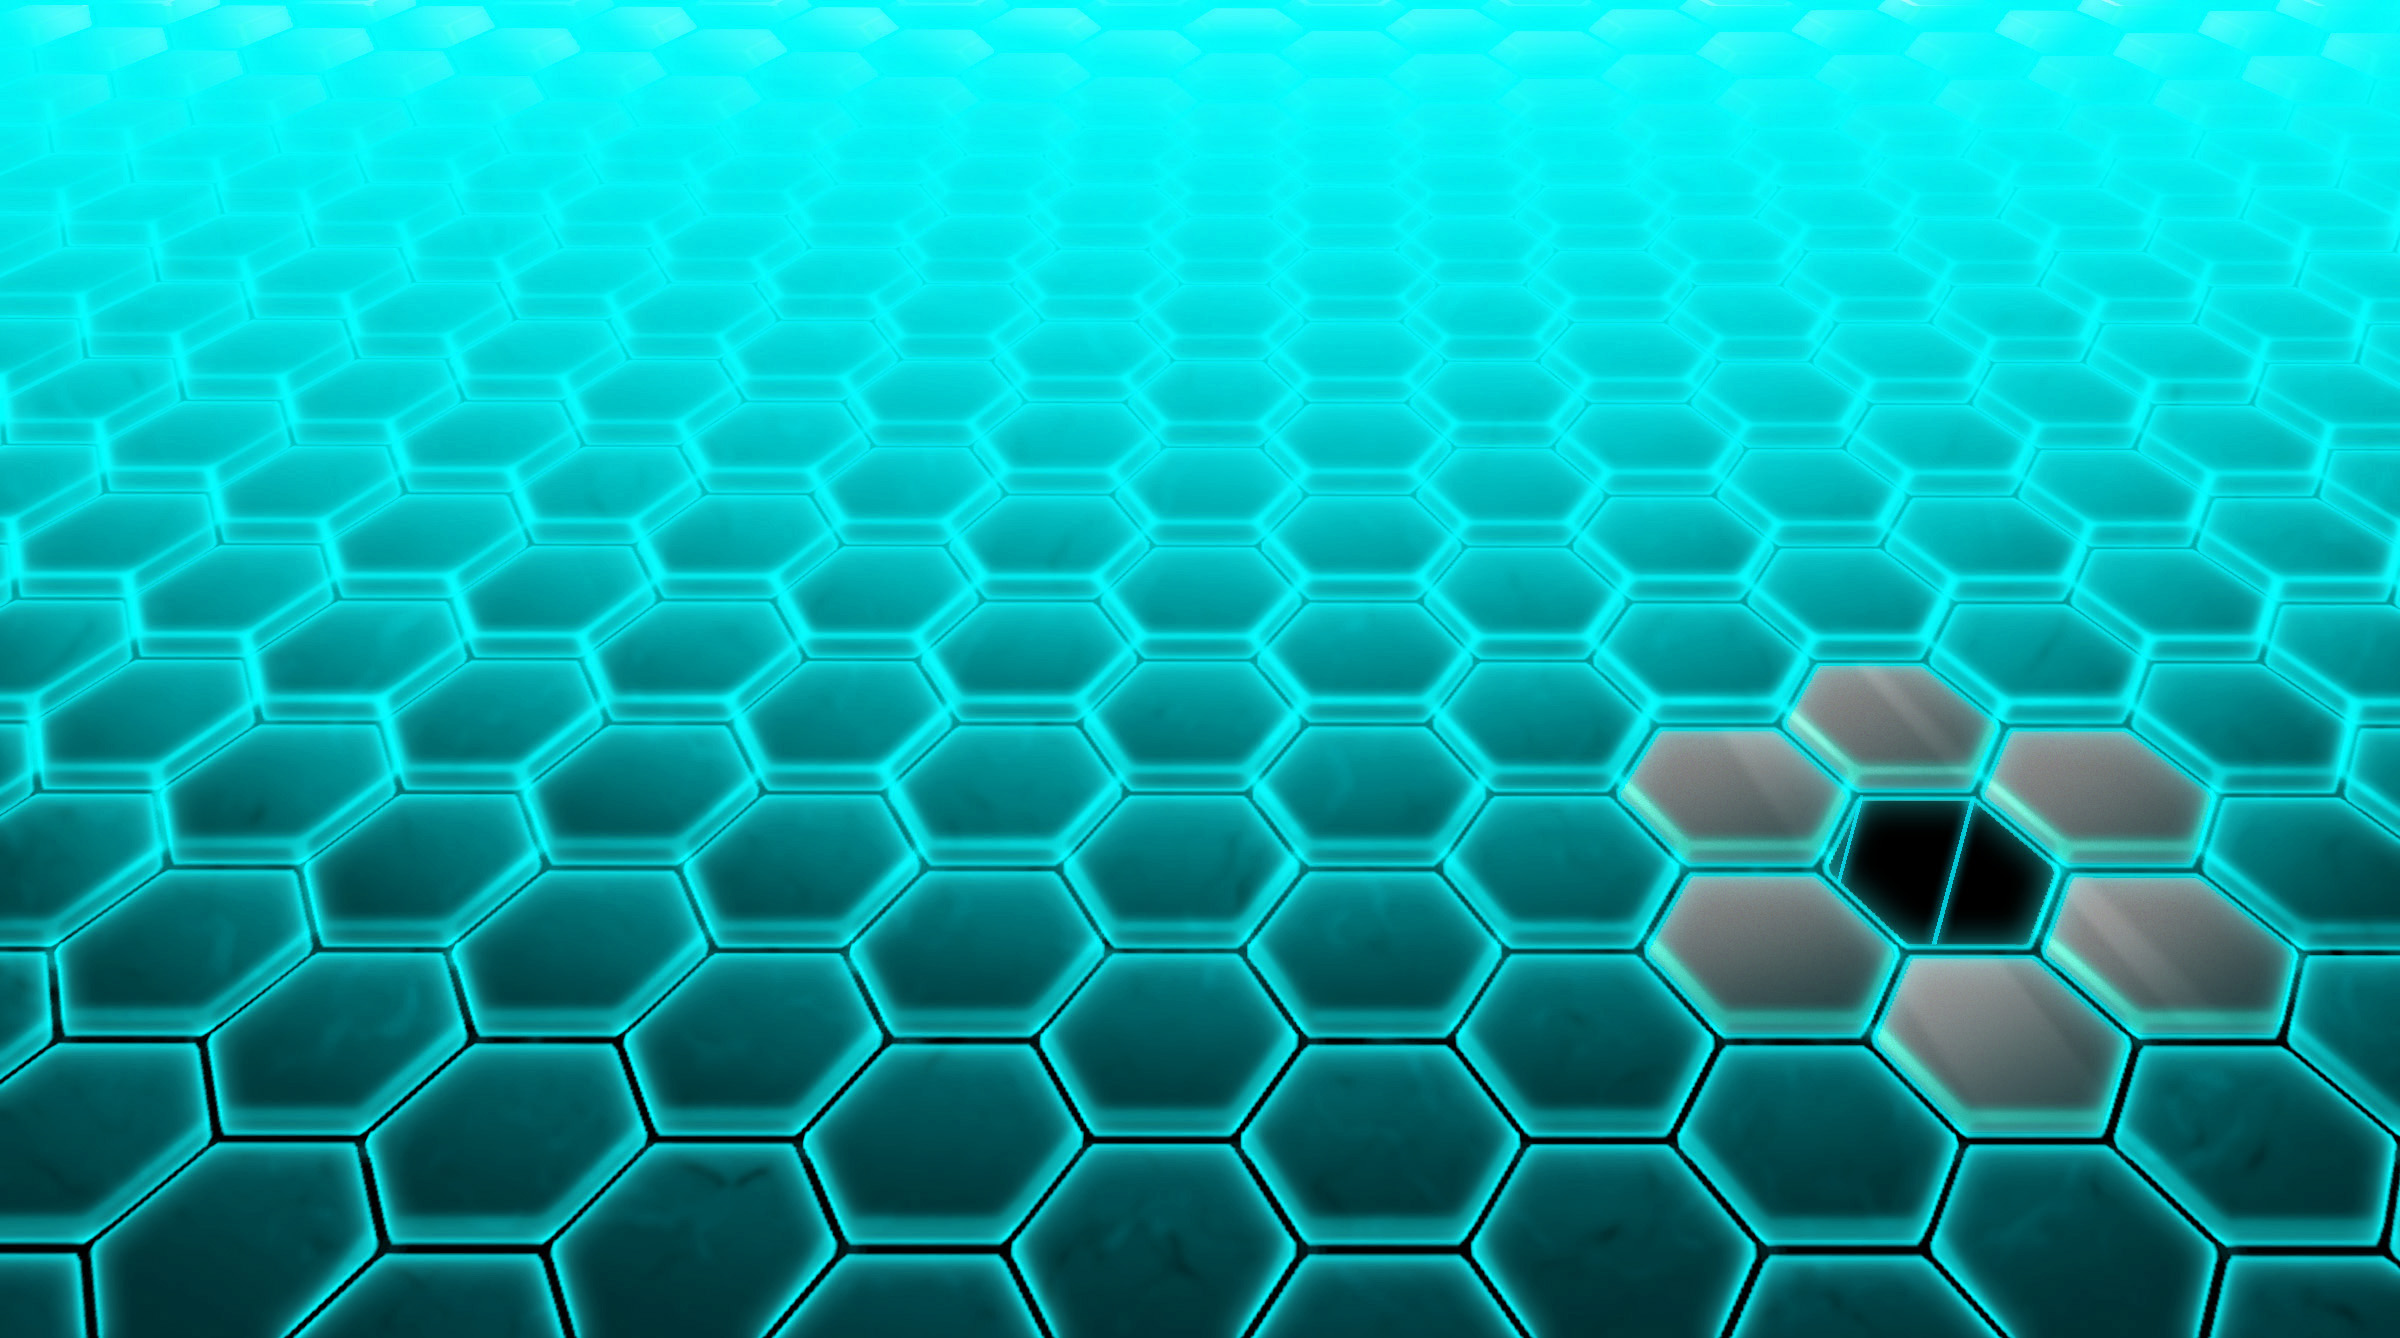 hive tech wallpaper blue by aexease customization wallpaper tiles 2011 2400x1338